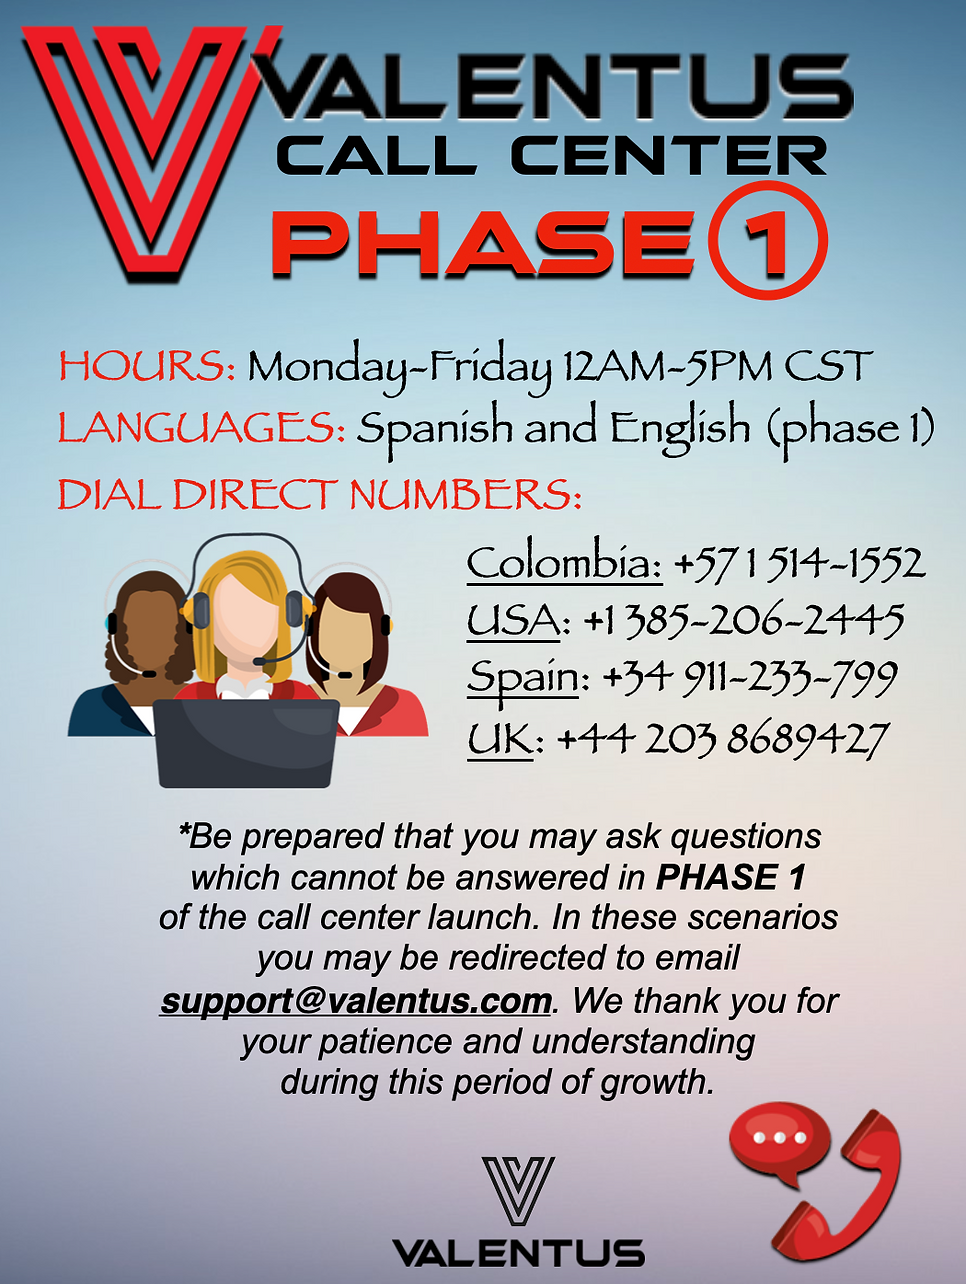 call center phase 1 spanish and english.